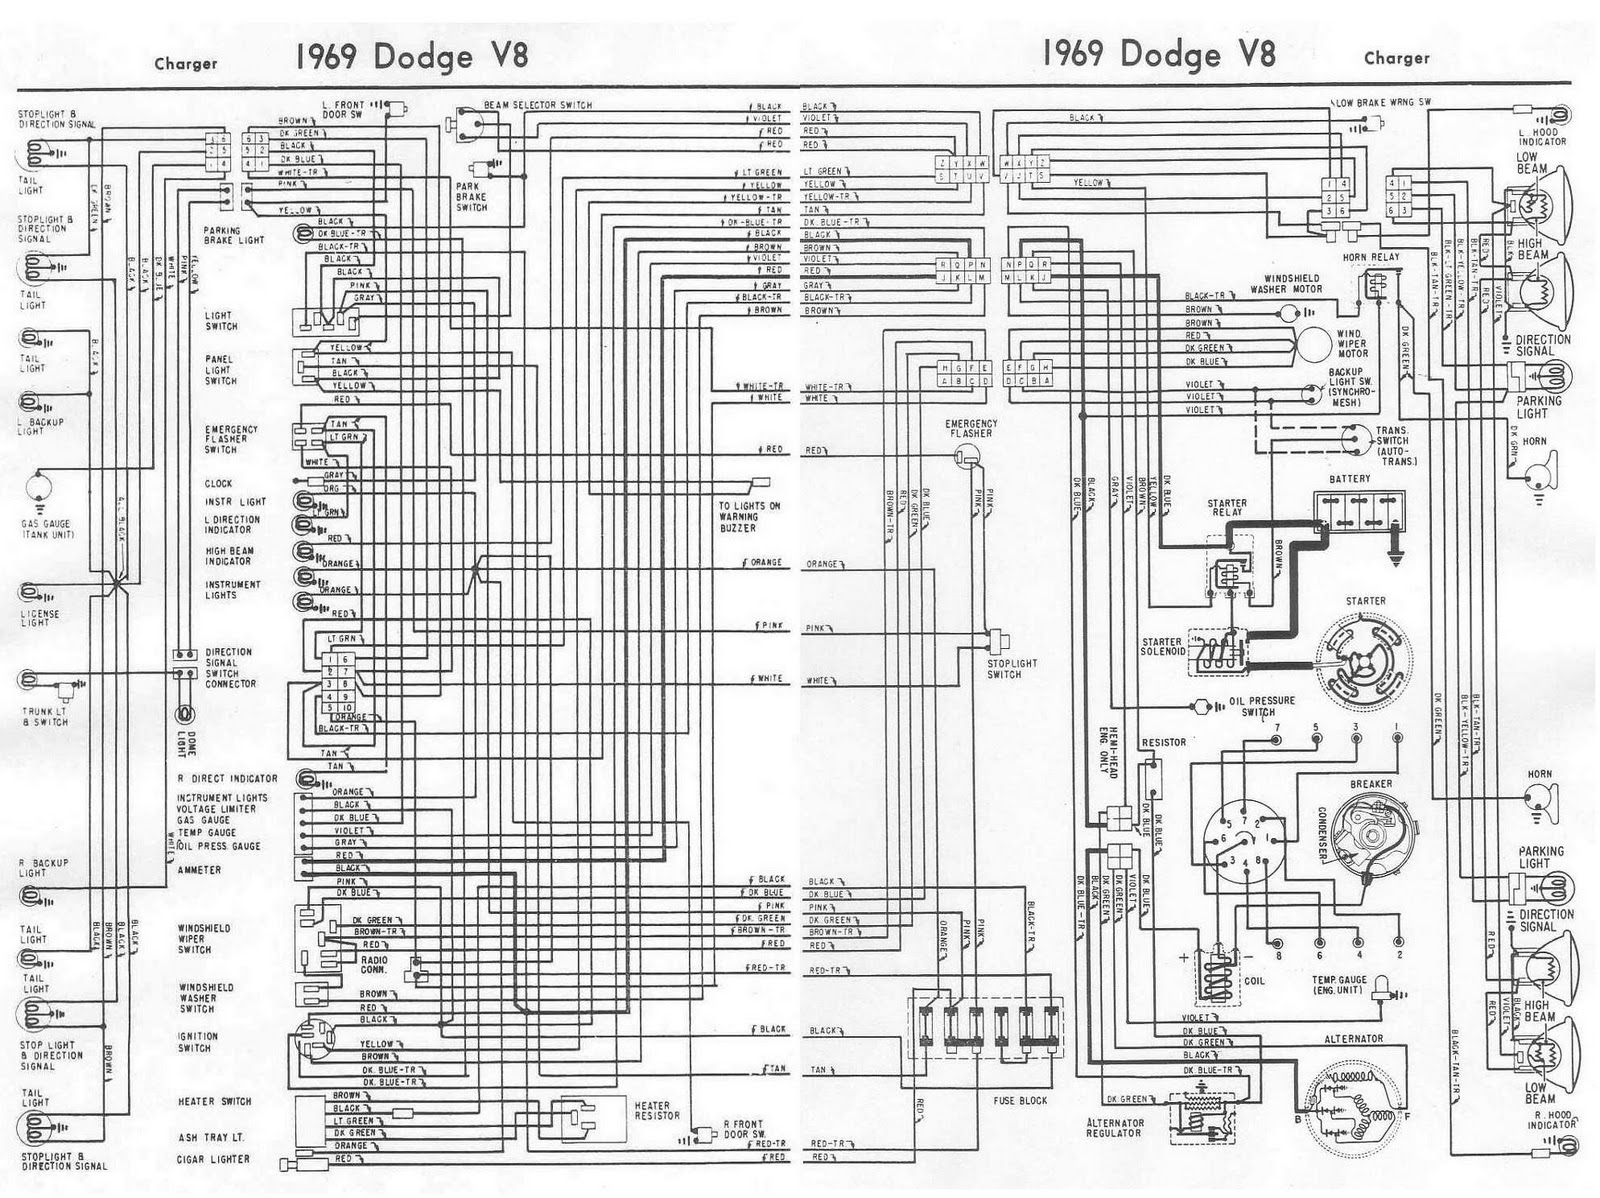 1969+Dodge+Charger+V8+Complete+Wiring+Diagram dodge charger 1969 v8 complete electrical wiring diagram all dodge wiring harness diagram at webbmarketing.co